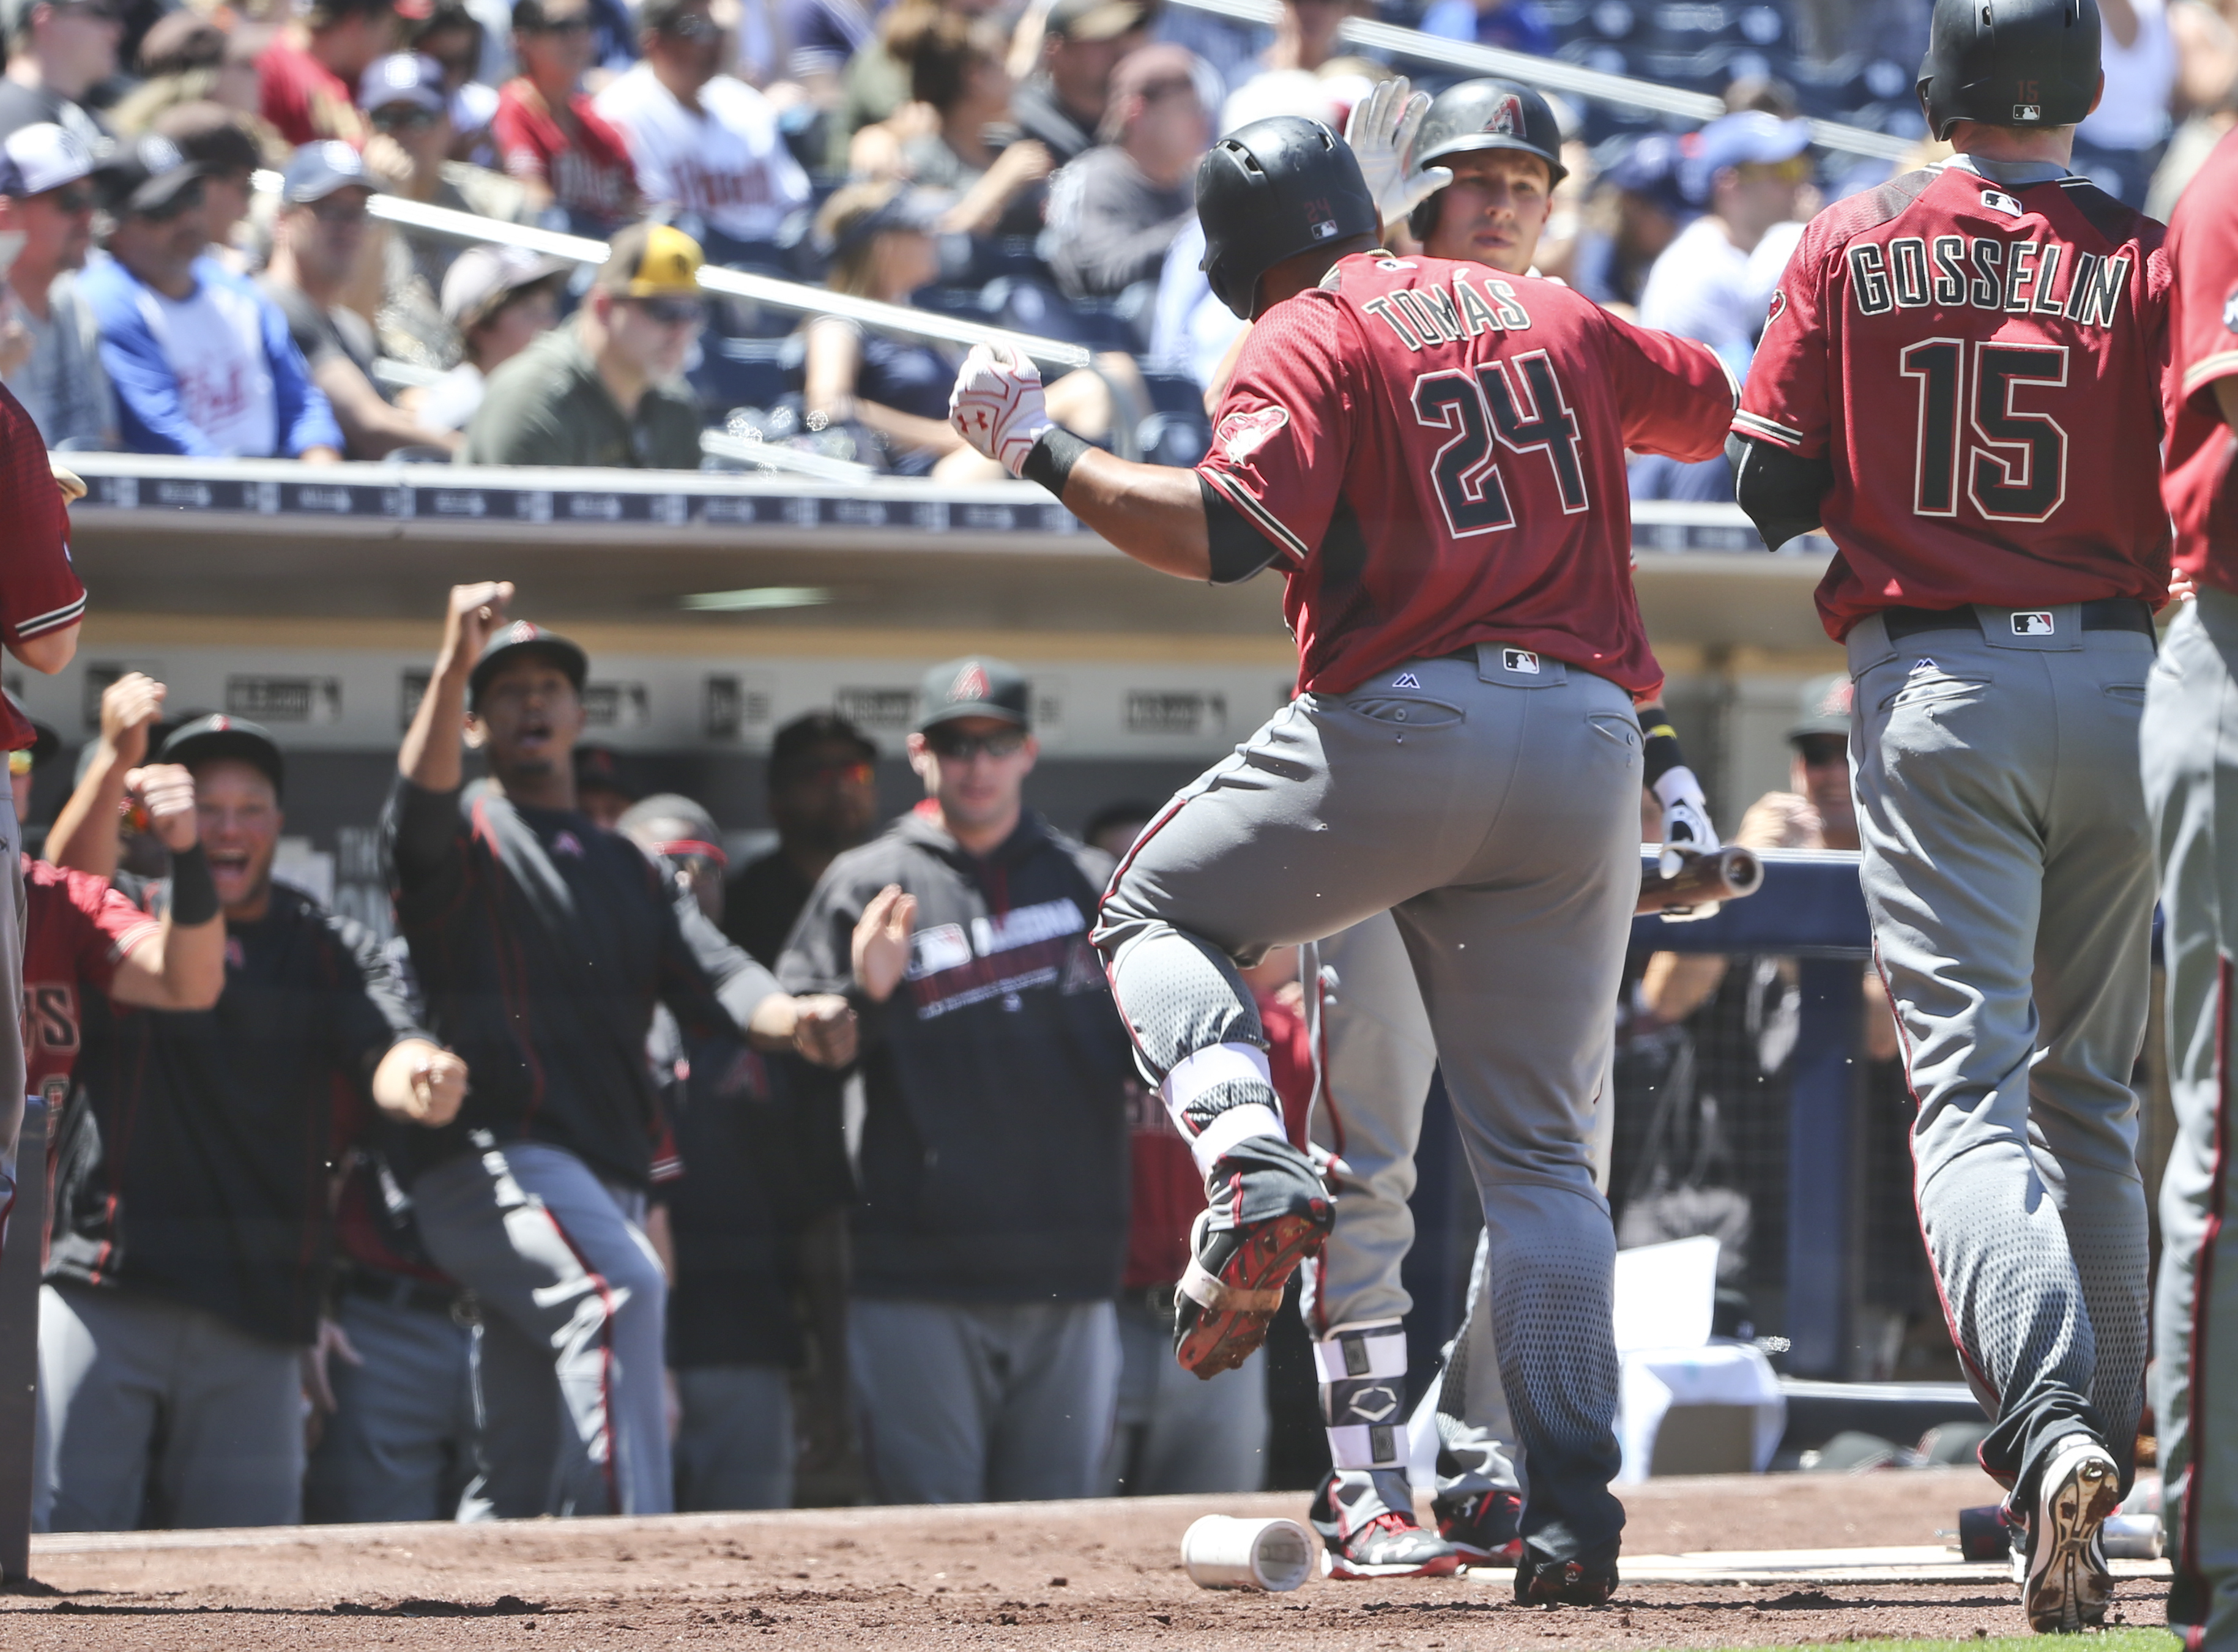 Arizona Diamondbacks' Yasmany Tomas dances while returning to the dugout after his two-run home run against the San Diego Padres in the first inning of a baseball game Sunday, April 17, 2016, in San Diego. (AP Photo/Lenny Ignelzi)